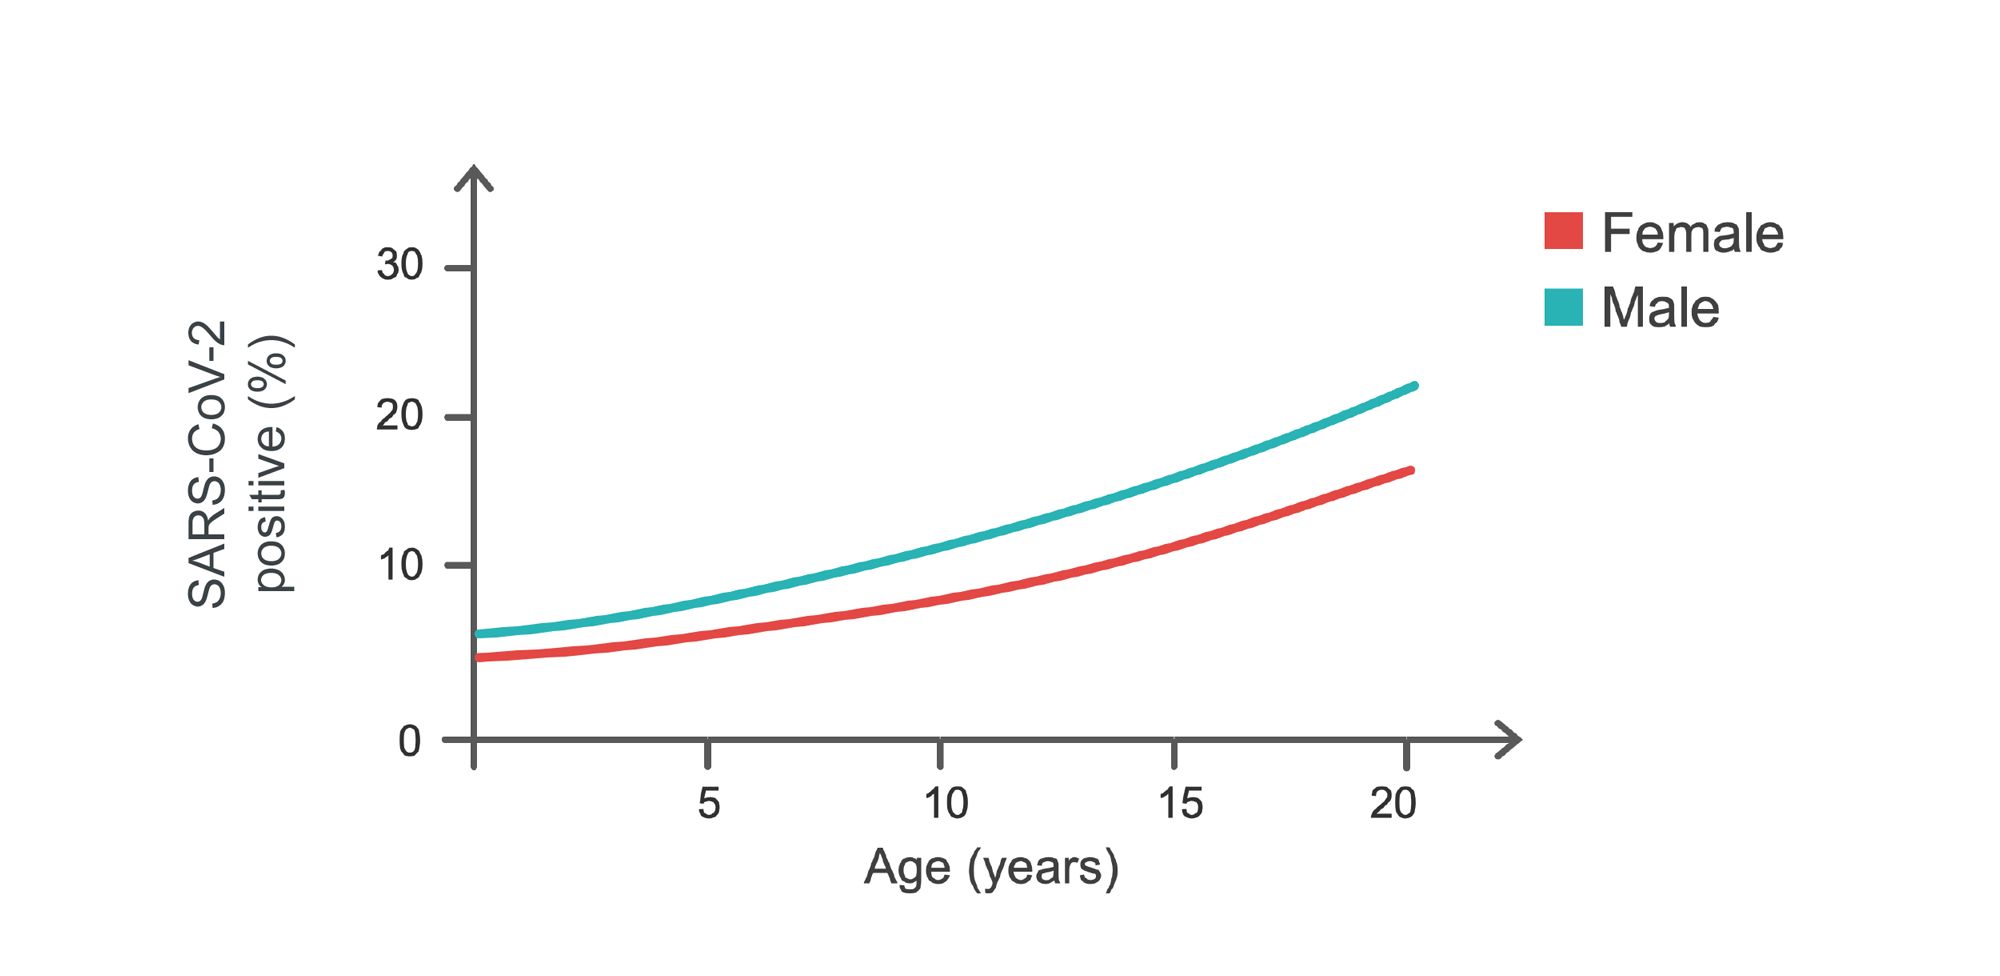 graph of fraction of individuals positive for COVID-19 by age and sex.